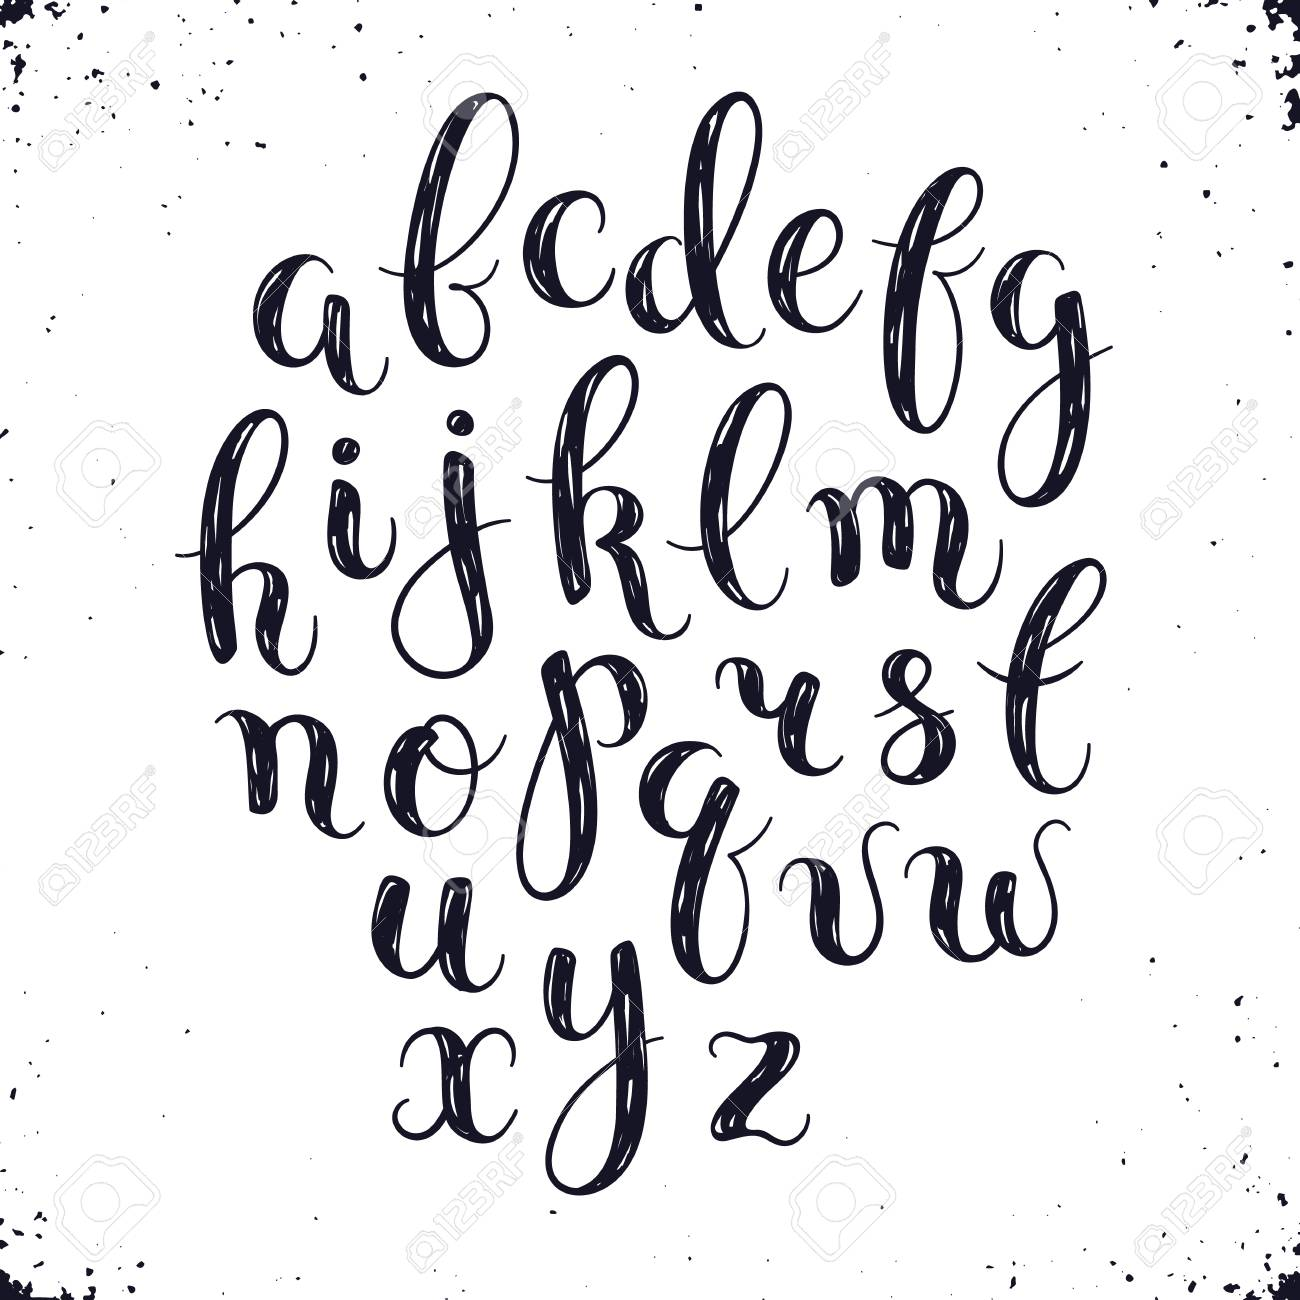 handmade letters handwritten alphabet with watercolor spots on background hand drawn calligraphy modern